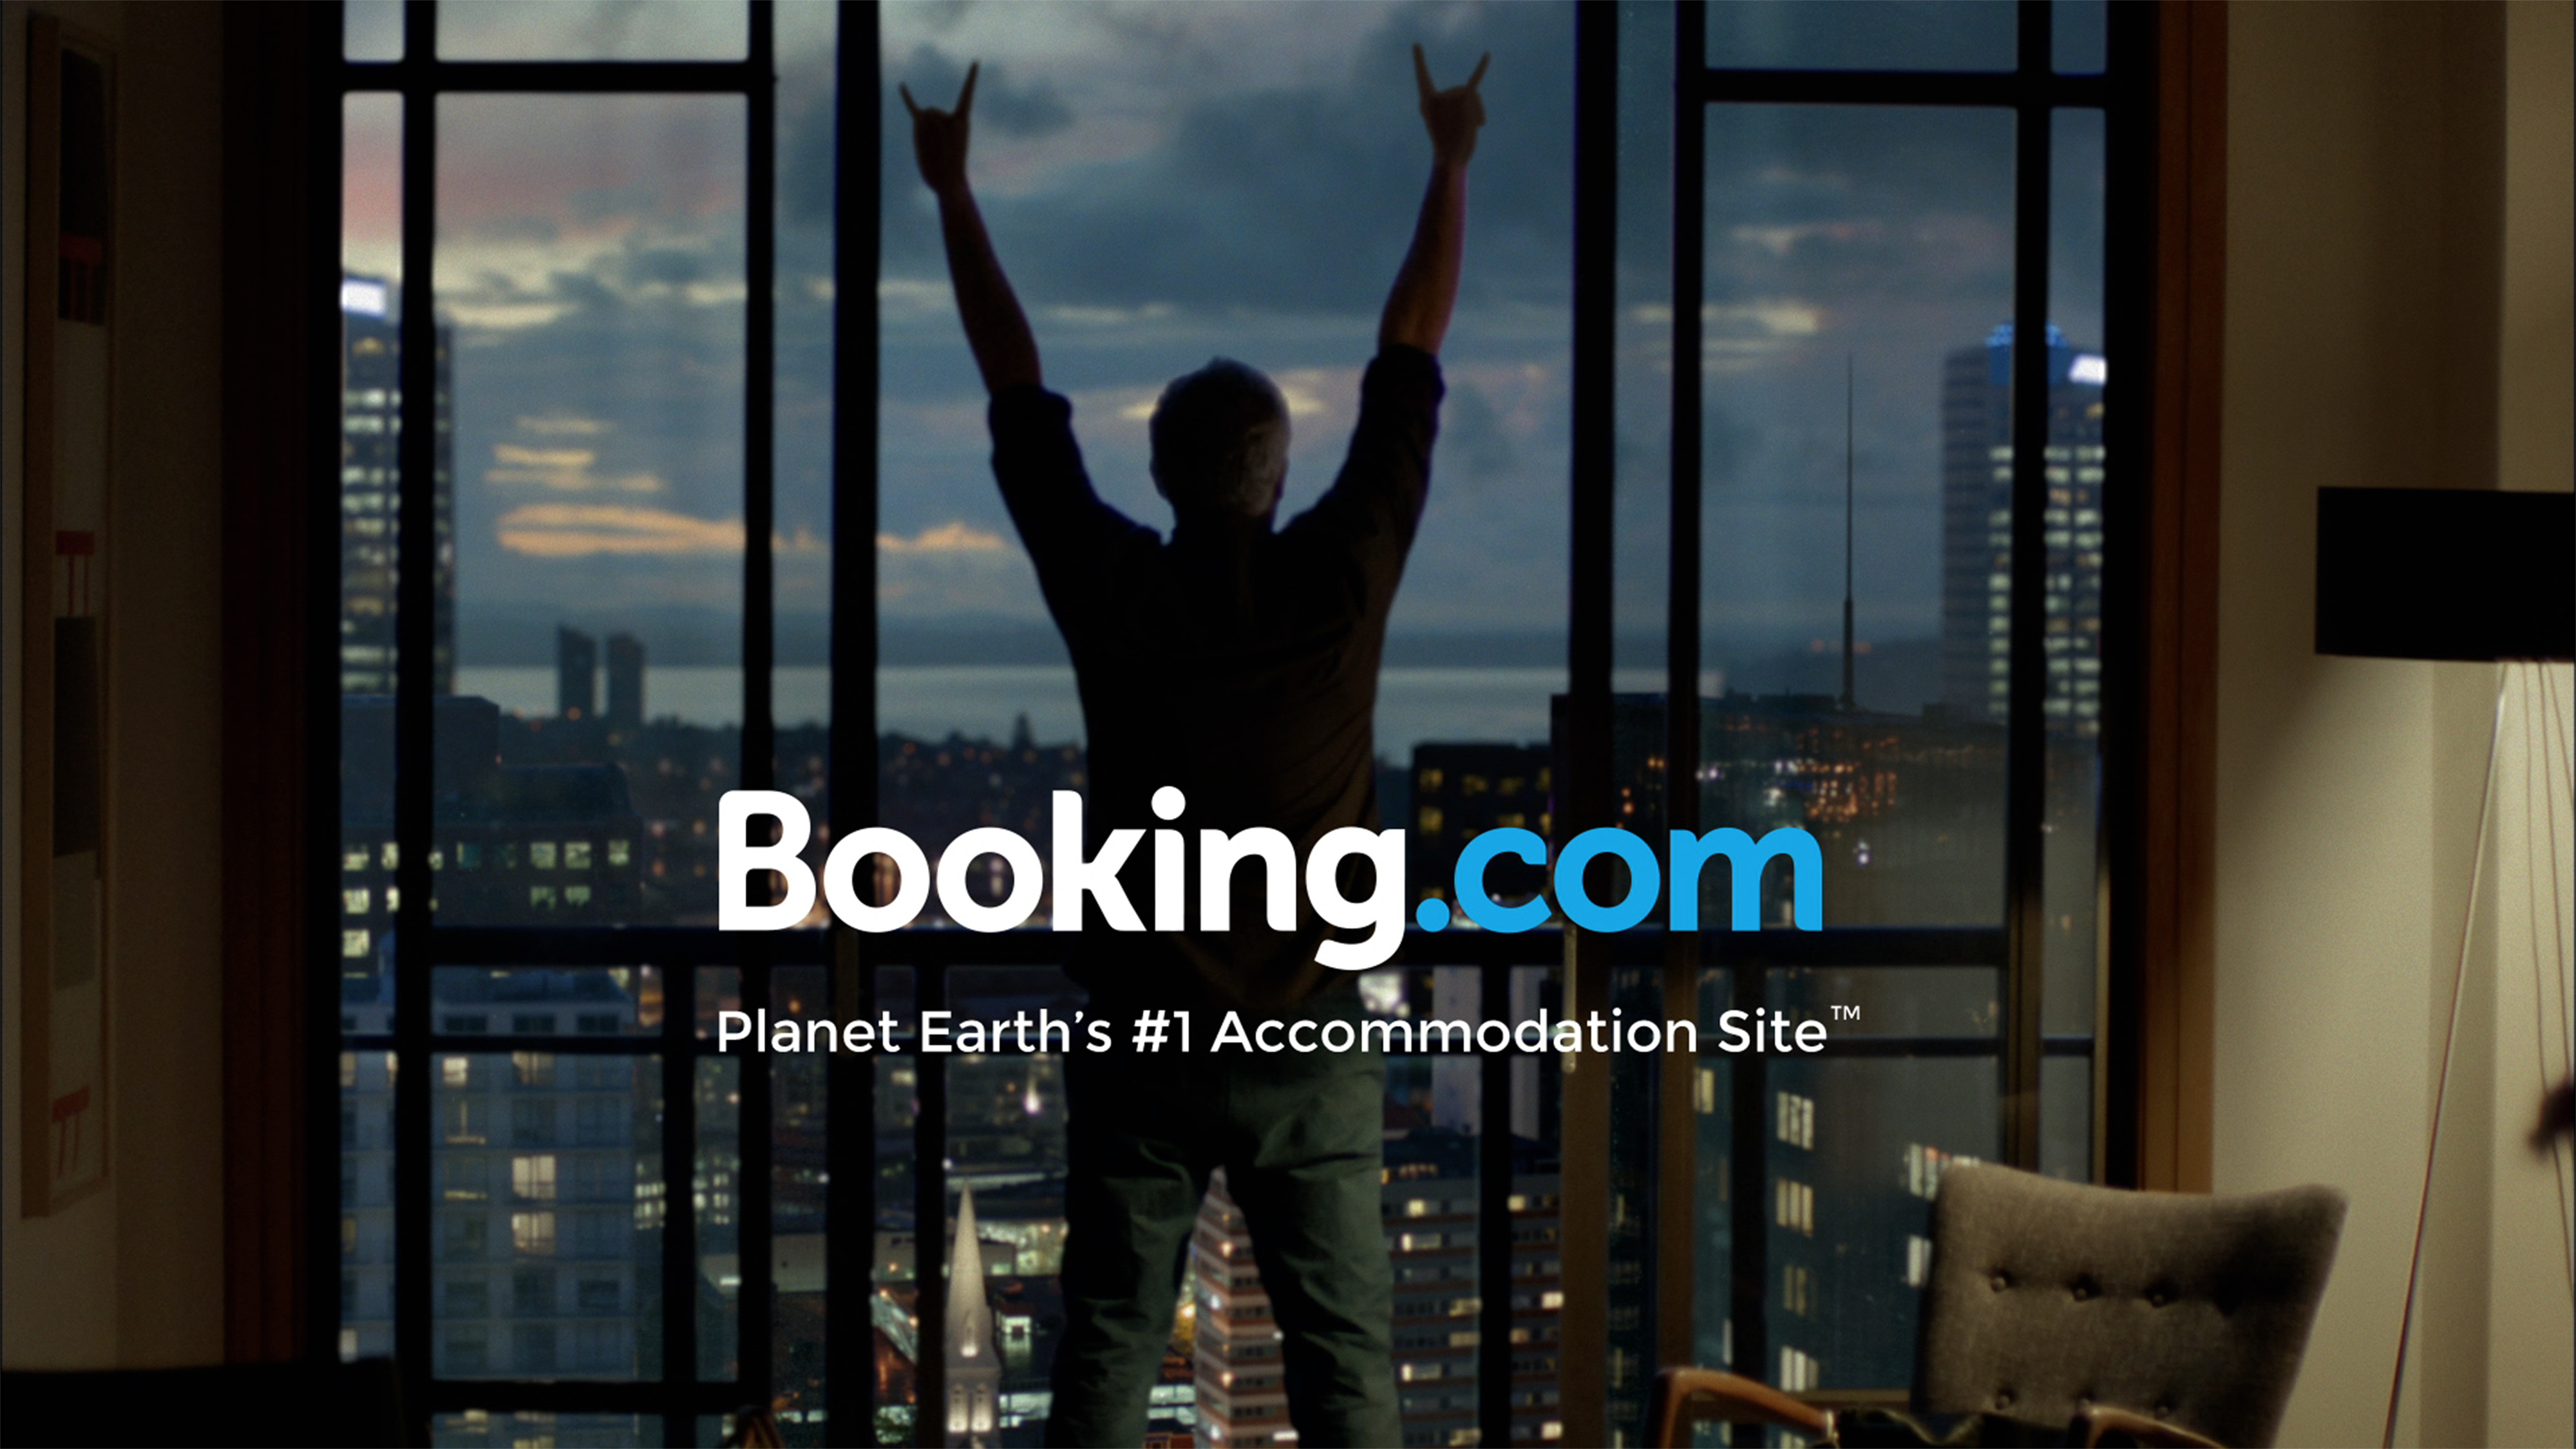 Marketing incitatif Booking.com